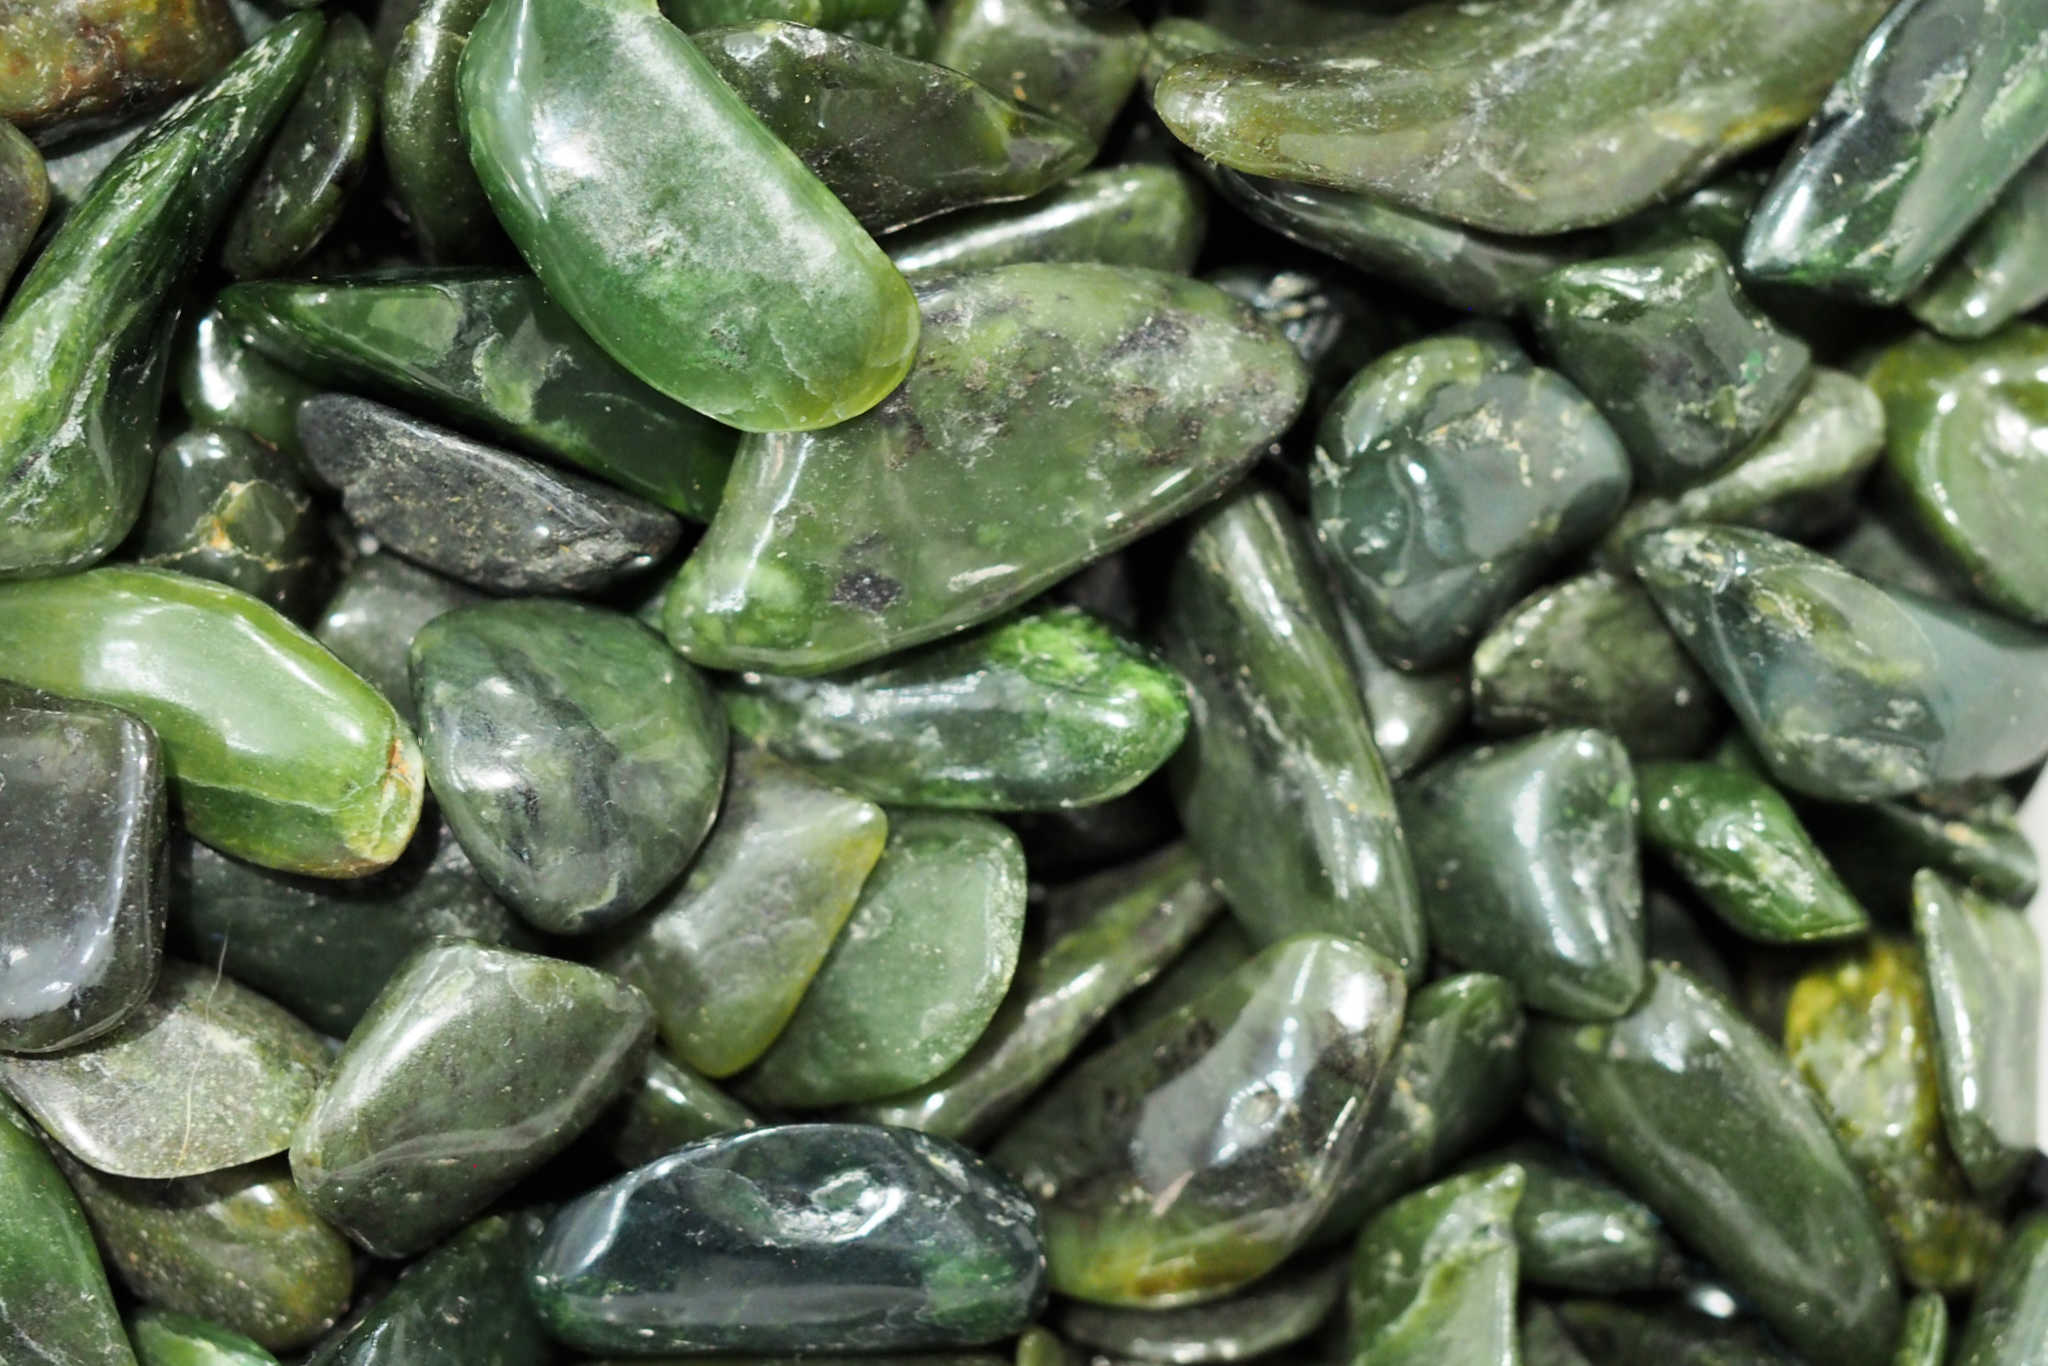 NEPHRITE JADE - An ornamental stone used in carvings, beads, or cabochon cut gemstones for centuries.Origin: Russia, New Zealand, China, Thailand, and CanadaProperties: A protective stone, transforms negative energy into positive. Promotes calm and enhances confidence, security and stability.